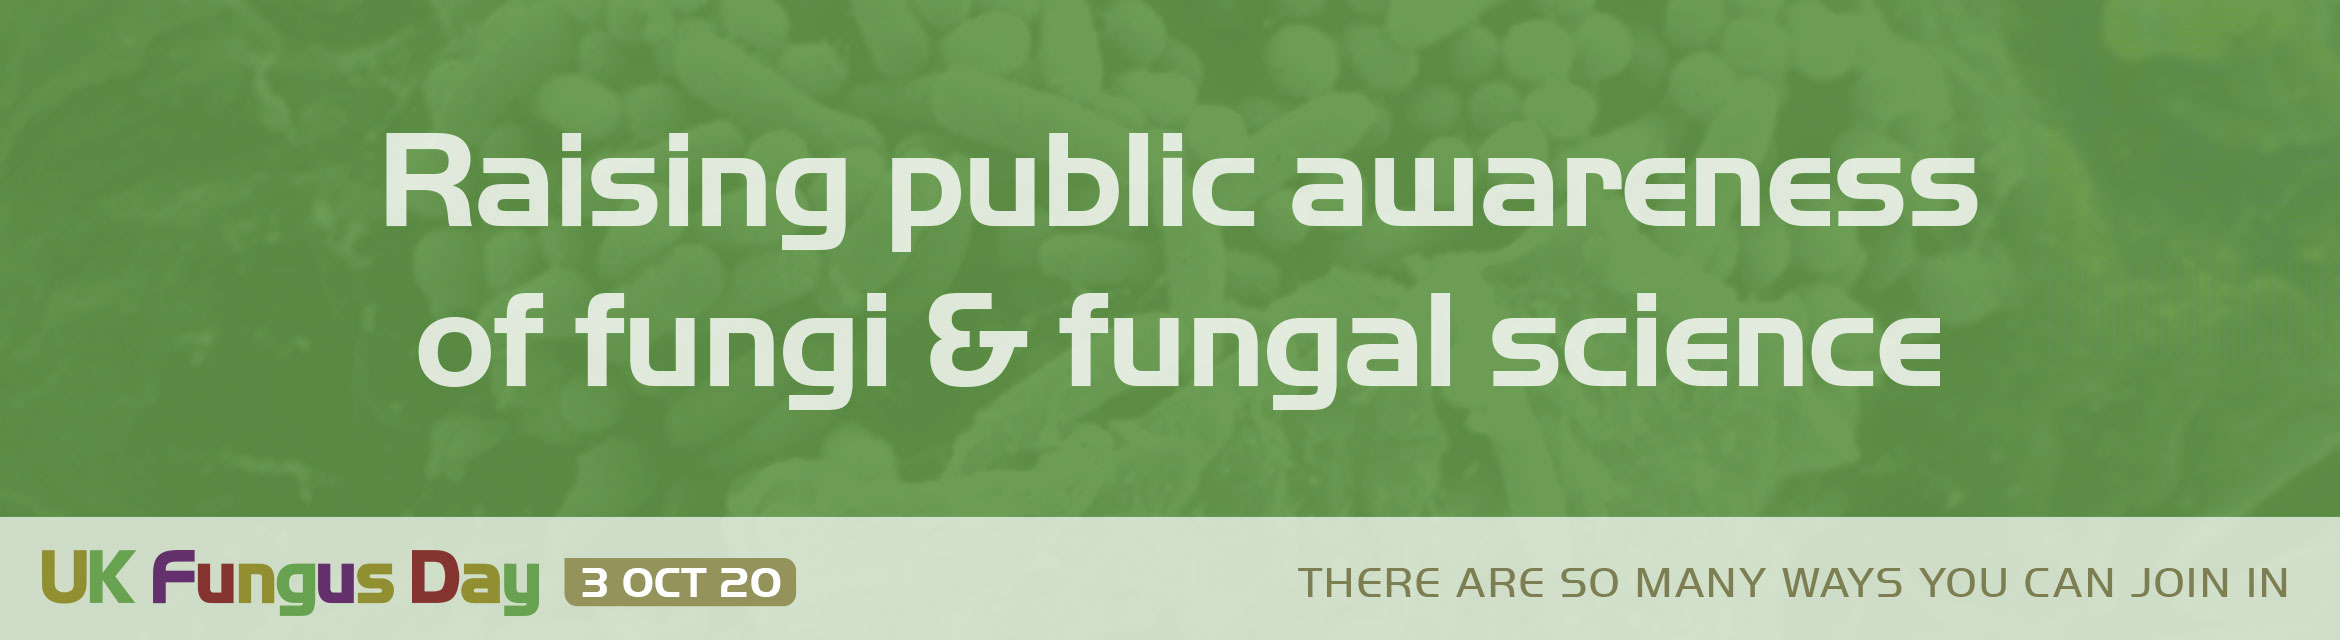 Raising public awareness of fungi & fungal science